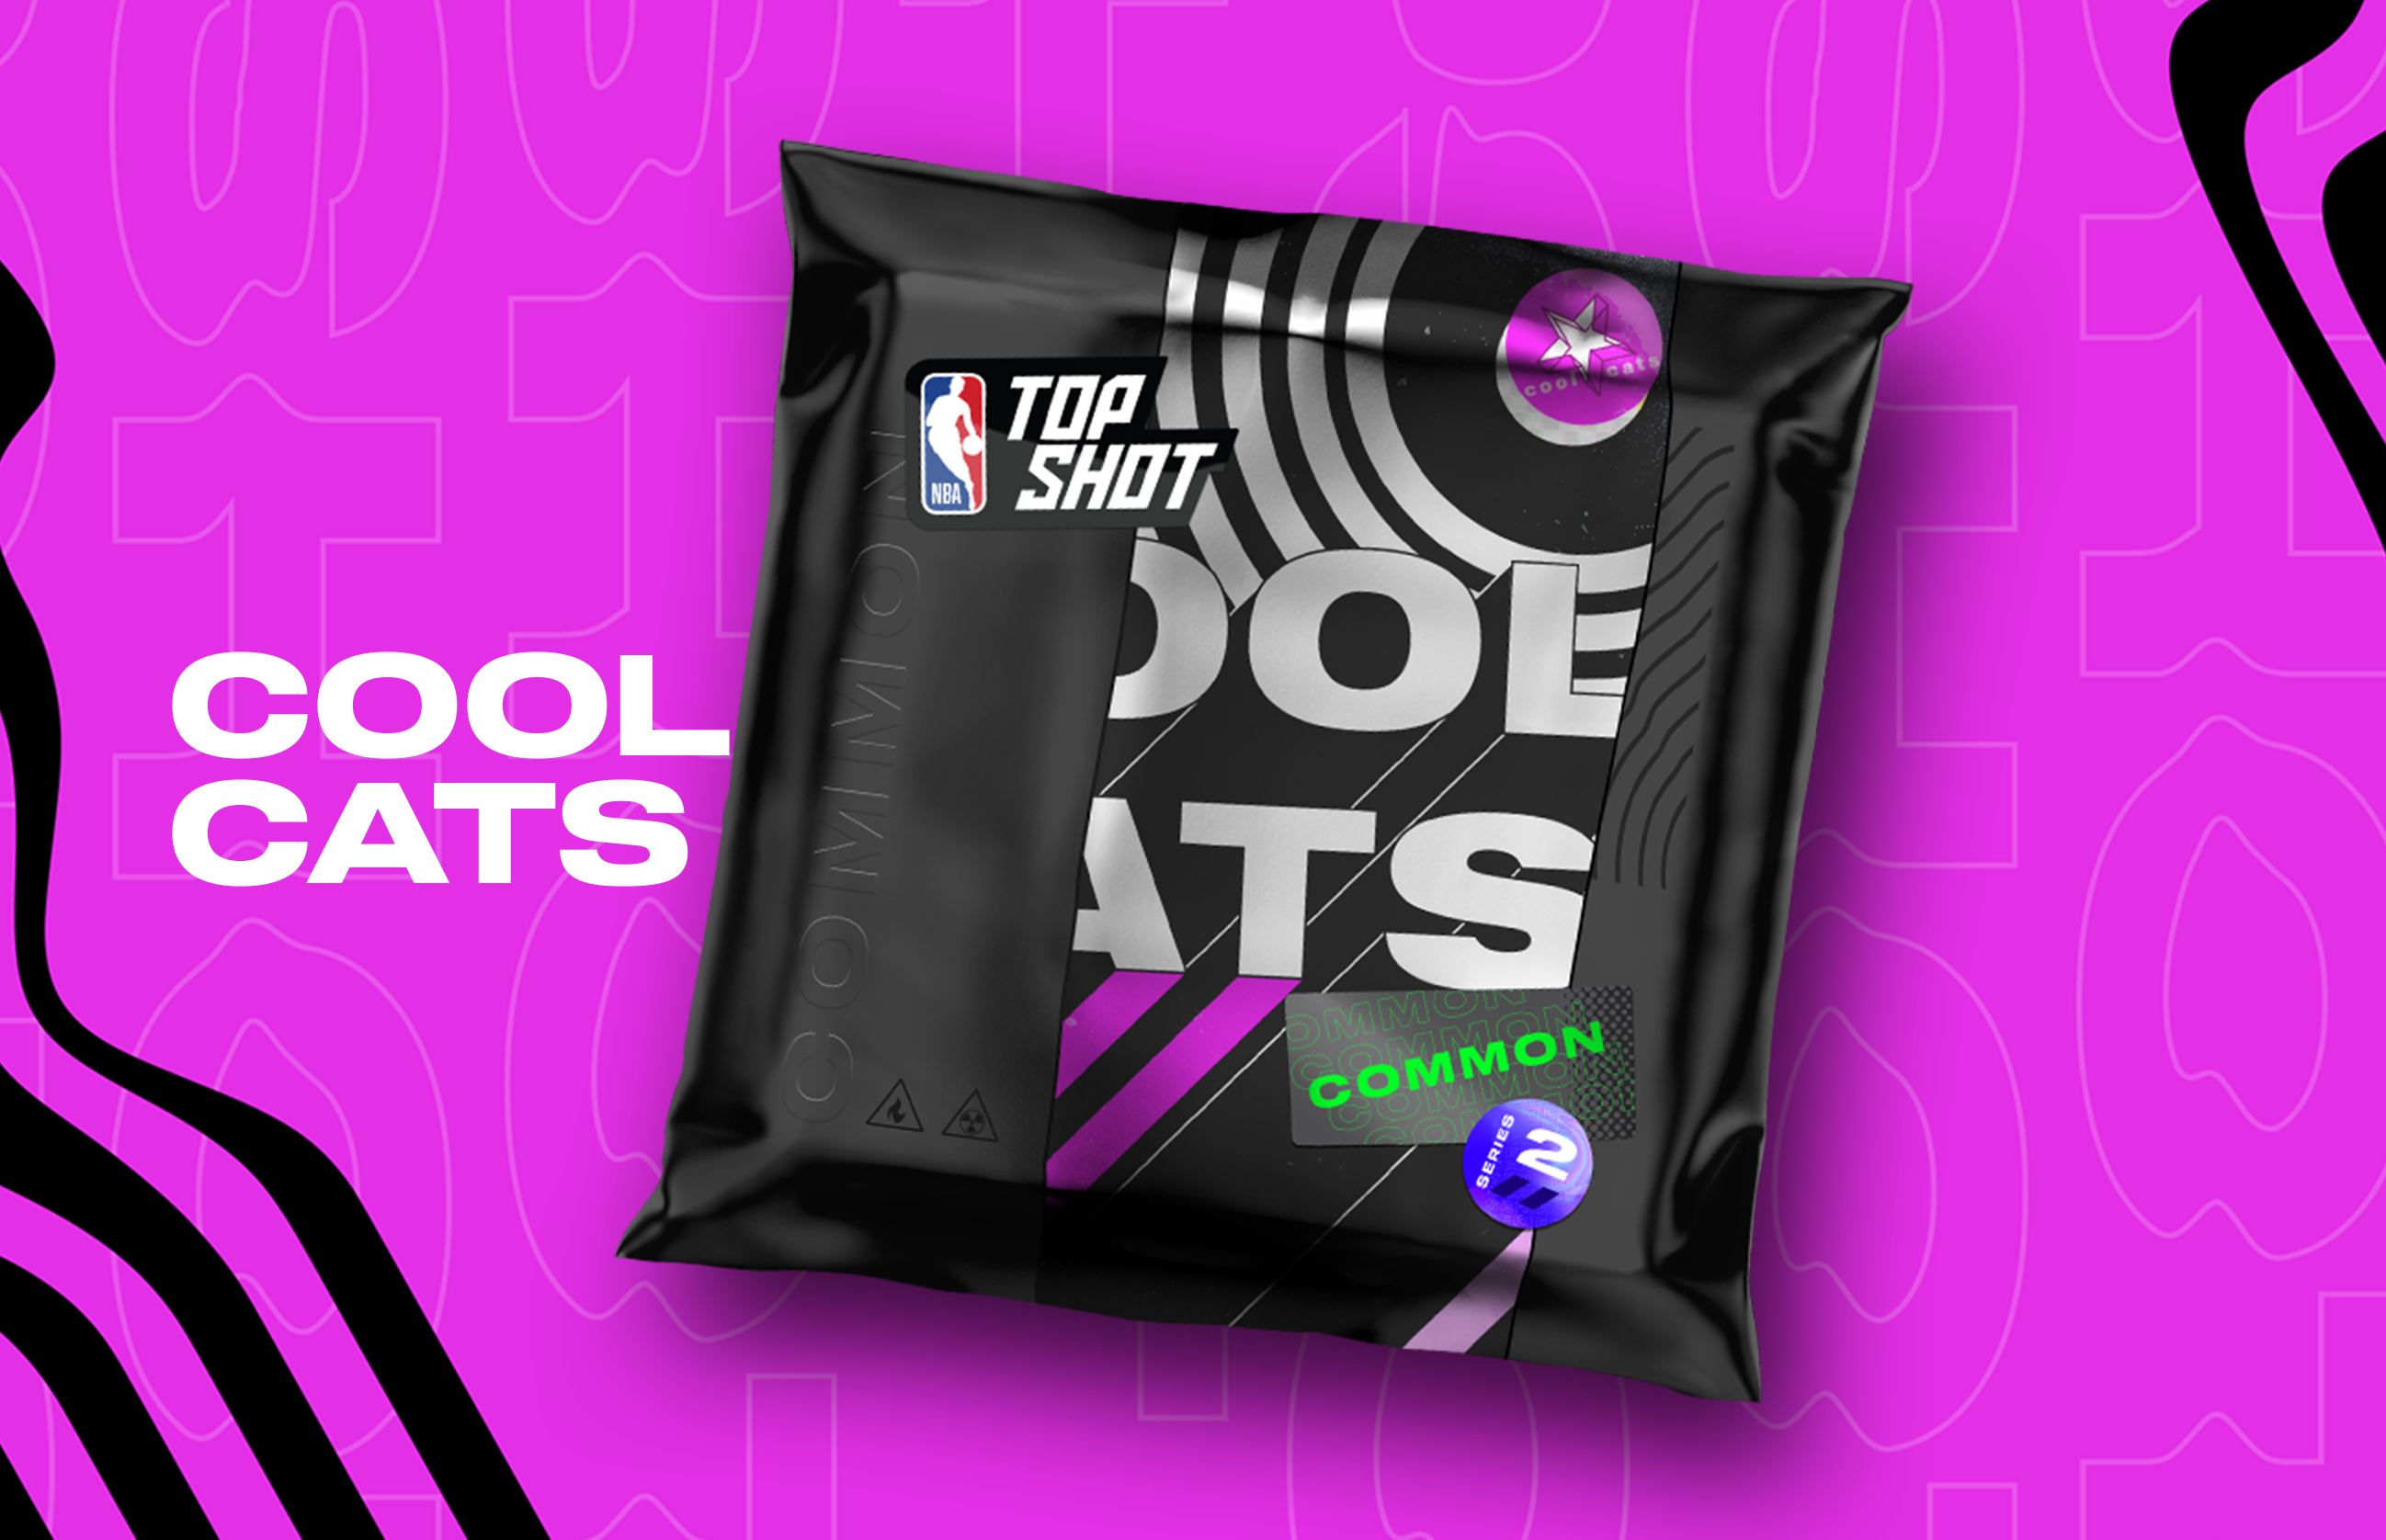 Collectors rejoice: a new common pack featuring up-and-coming stars from both conferences is dropping.